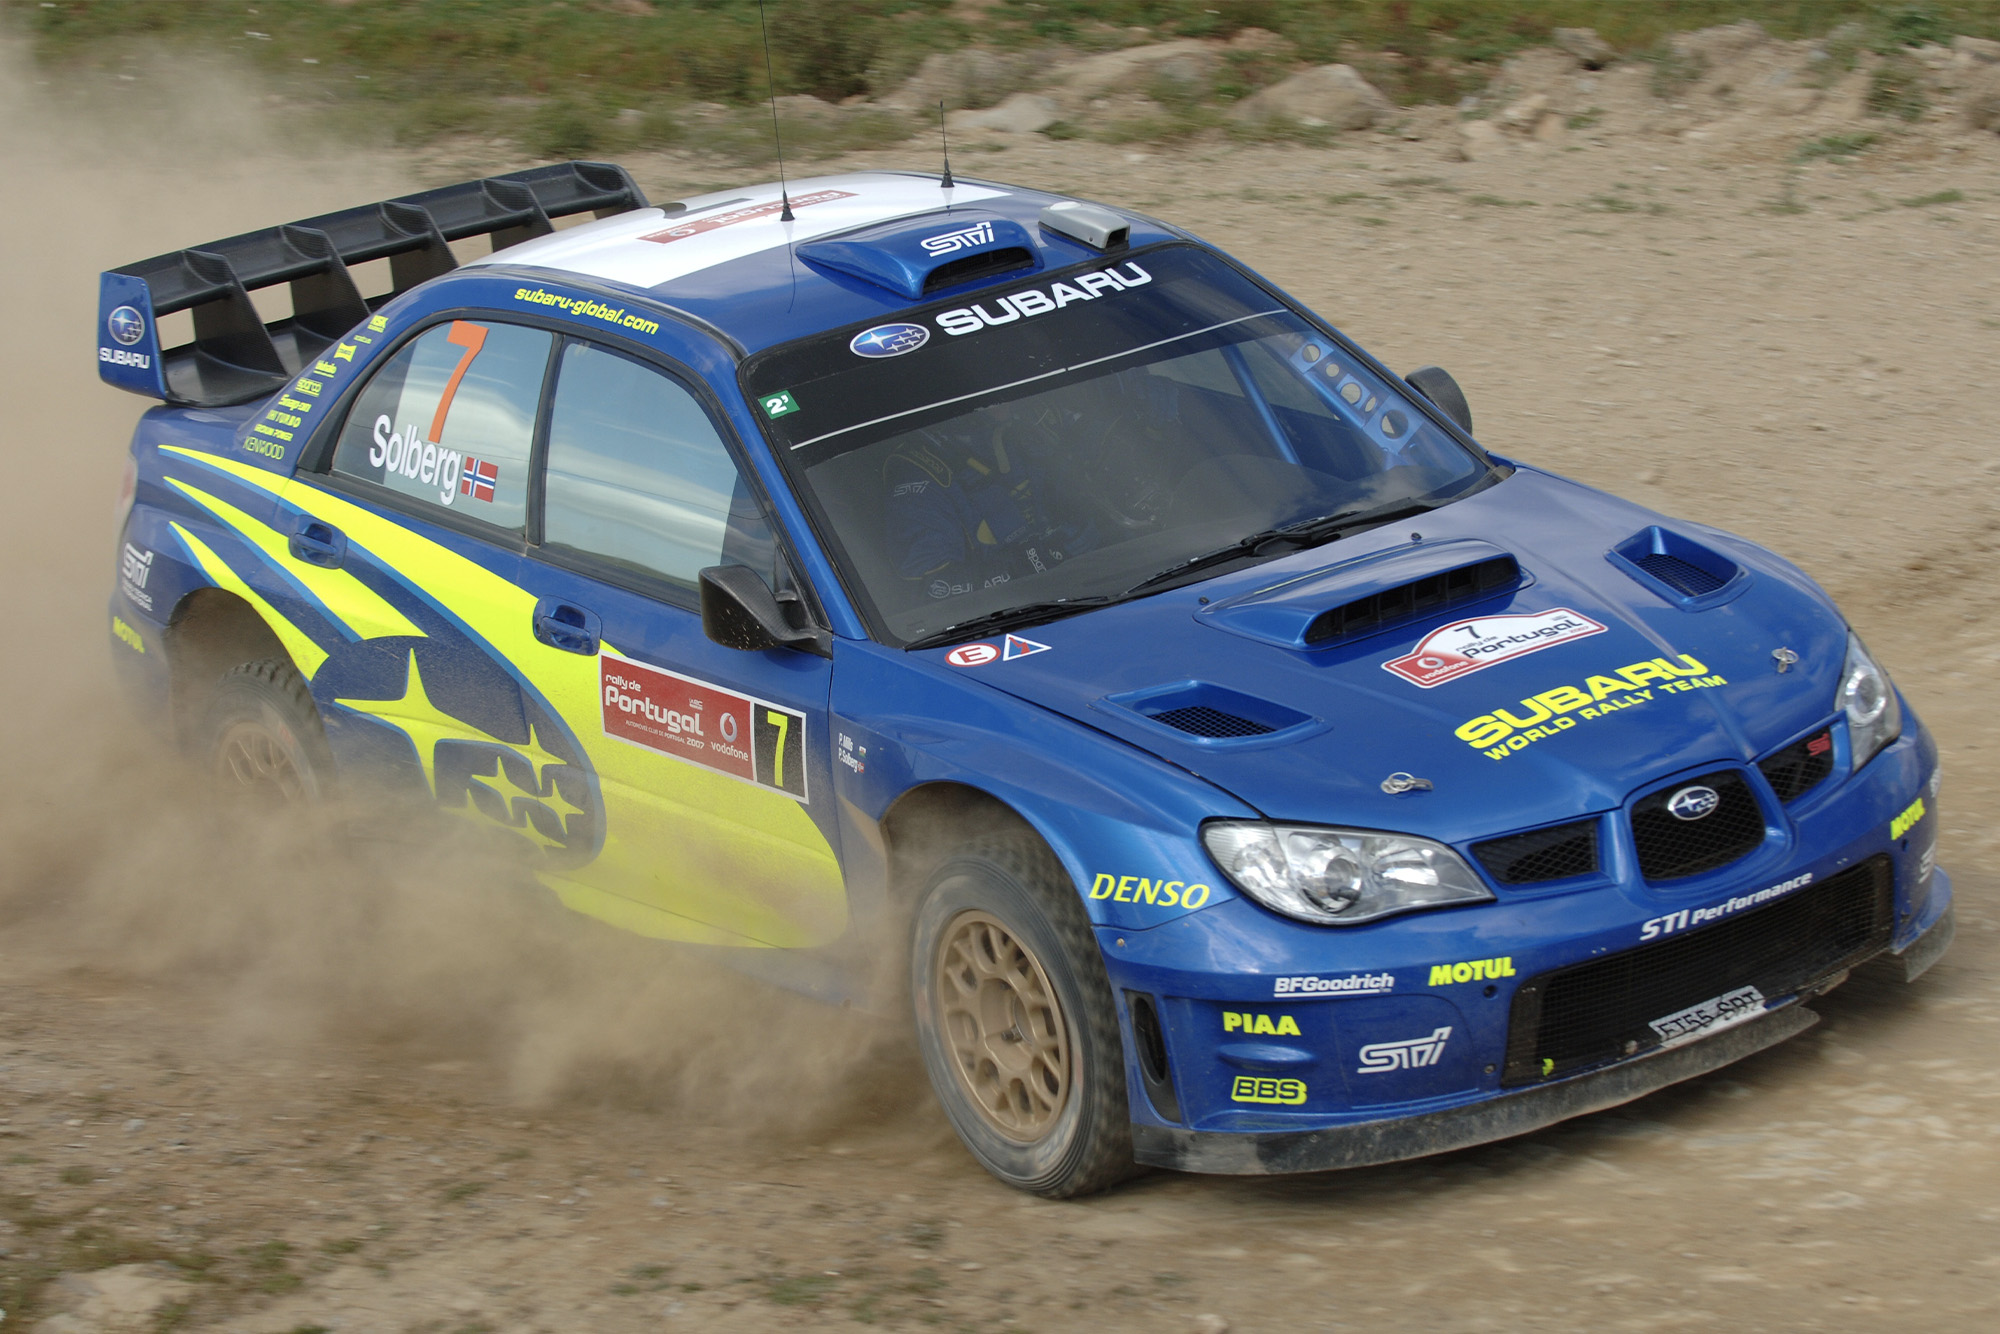 Race Retro to offer iconic rally cars at auction with RS200 and Impreza up for sale